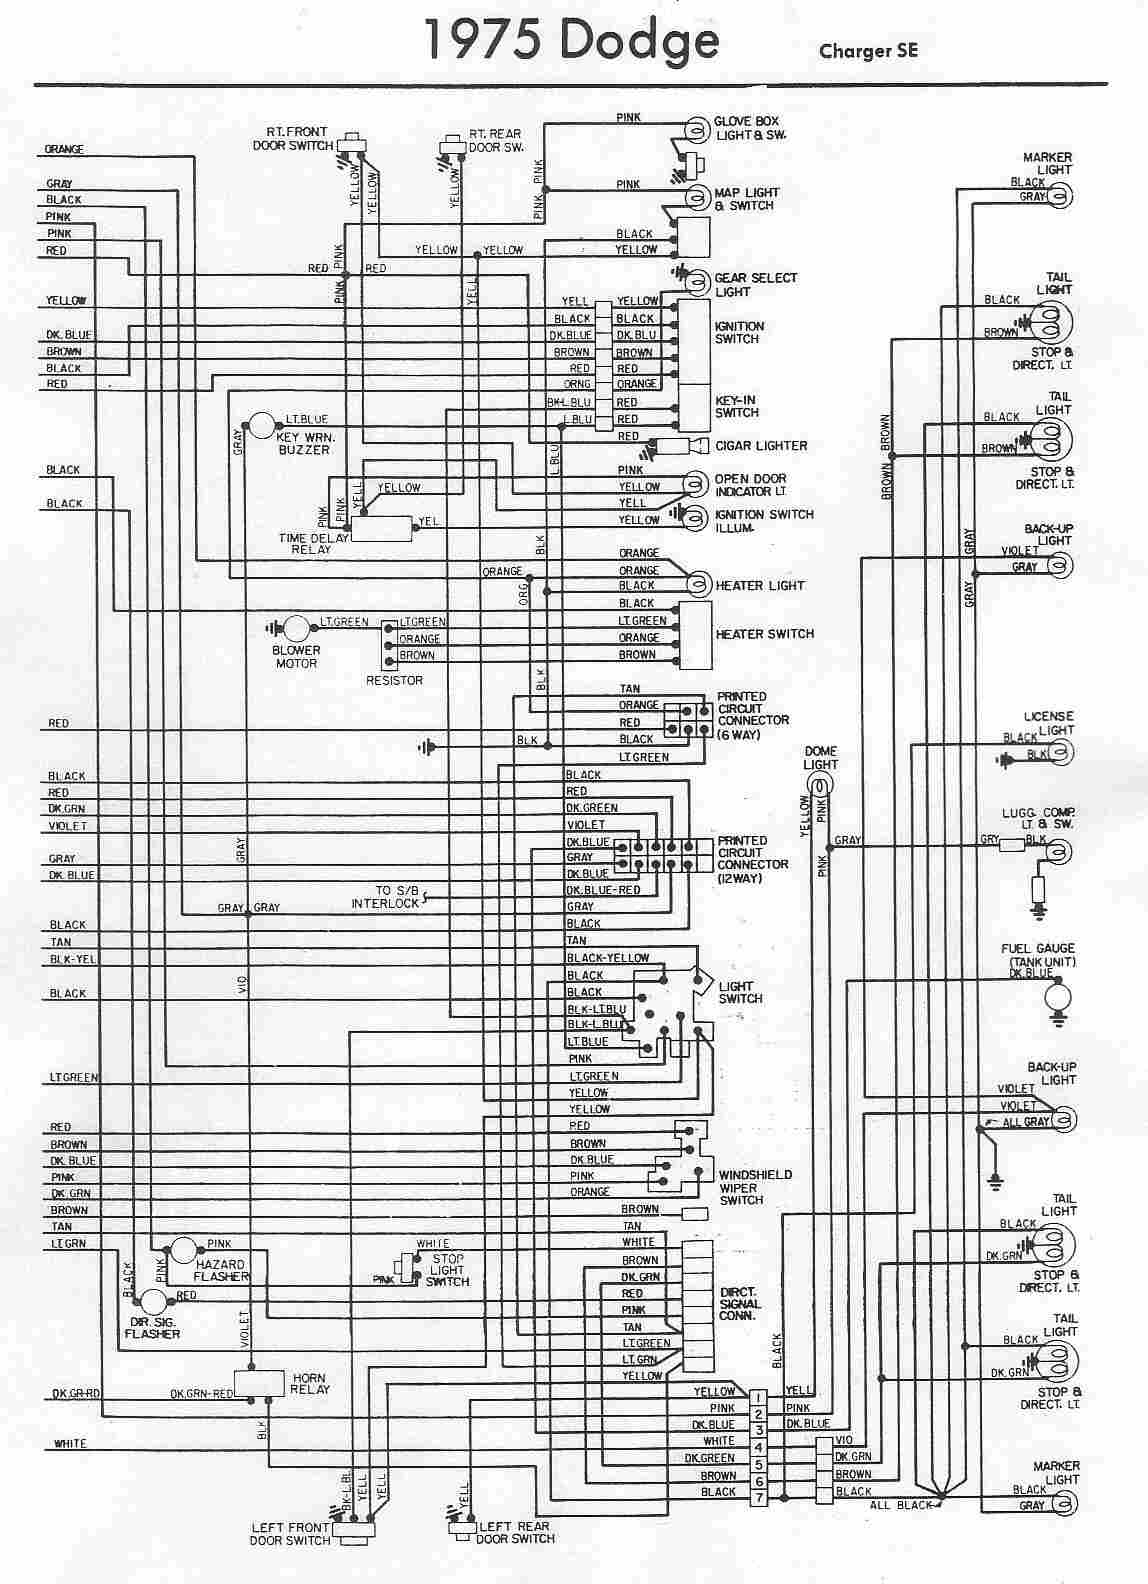 Wiring Diagram Mitsubishi Kuda Electrical Diagrams 1997 Mirage Truck Explore Schematic U2022 1993 Fuse And Relay Boxes For 1 5 Liter